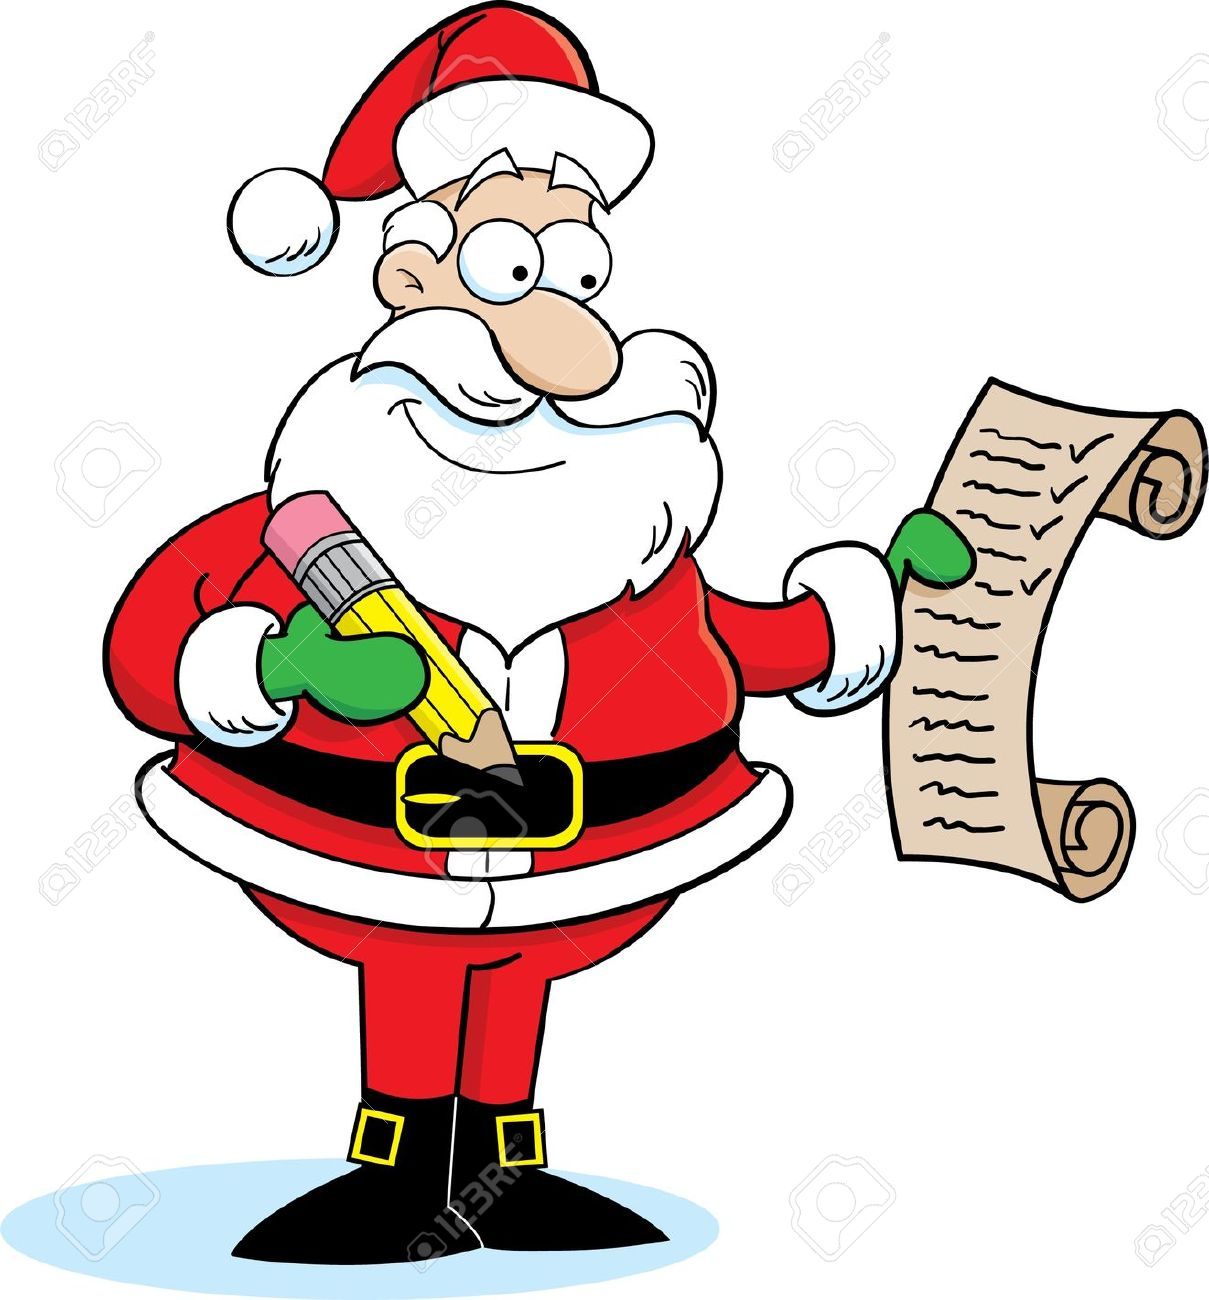 Santa claus list clipart vector transparent download Santa Checking List Clip Art – Clipart Free Download vector transparent download